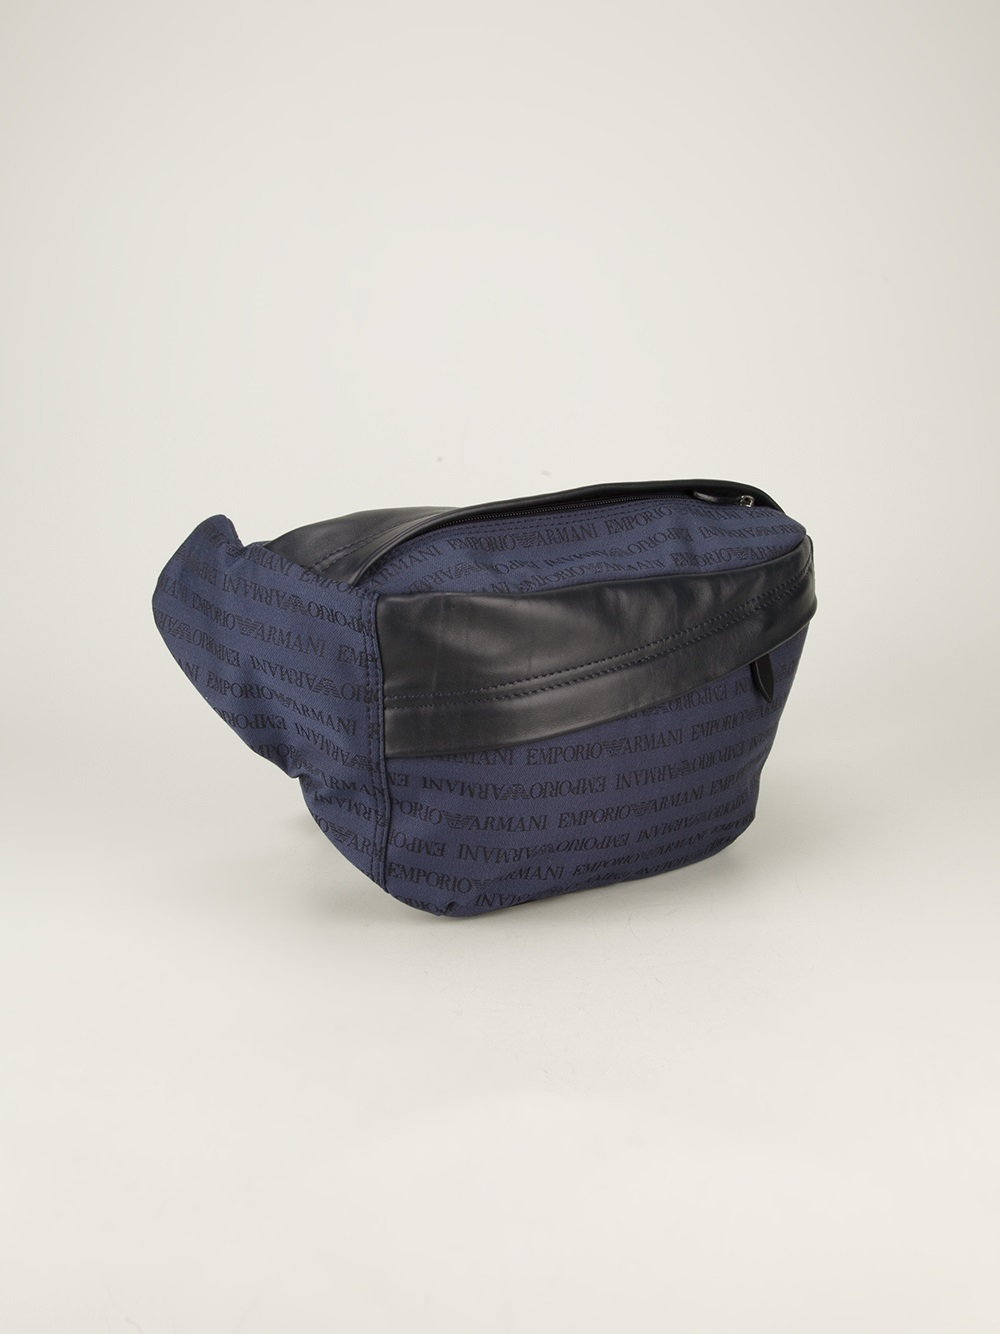 e4ee23d329 Lyst - Emporio Armani Branded Bum Bag in Blue for Men